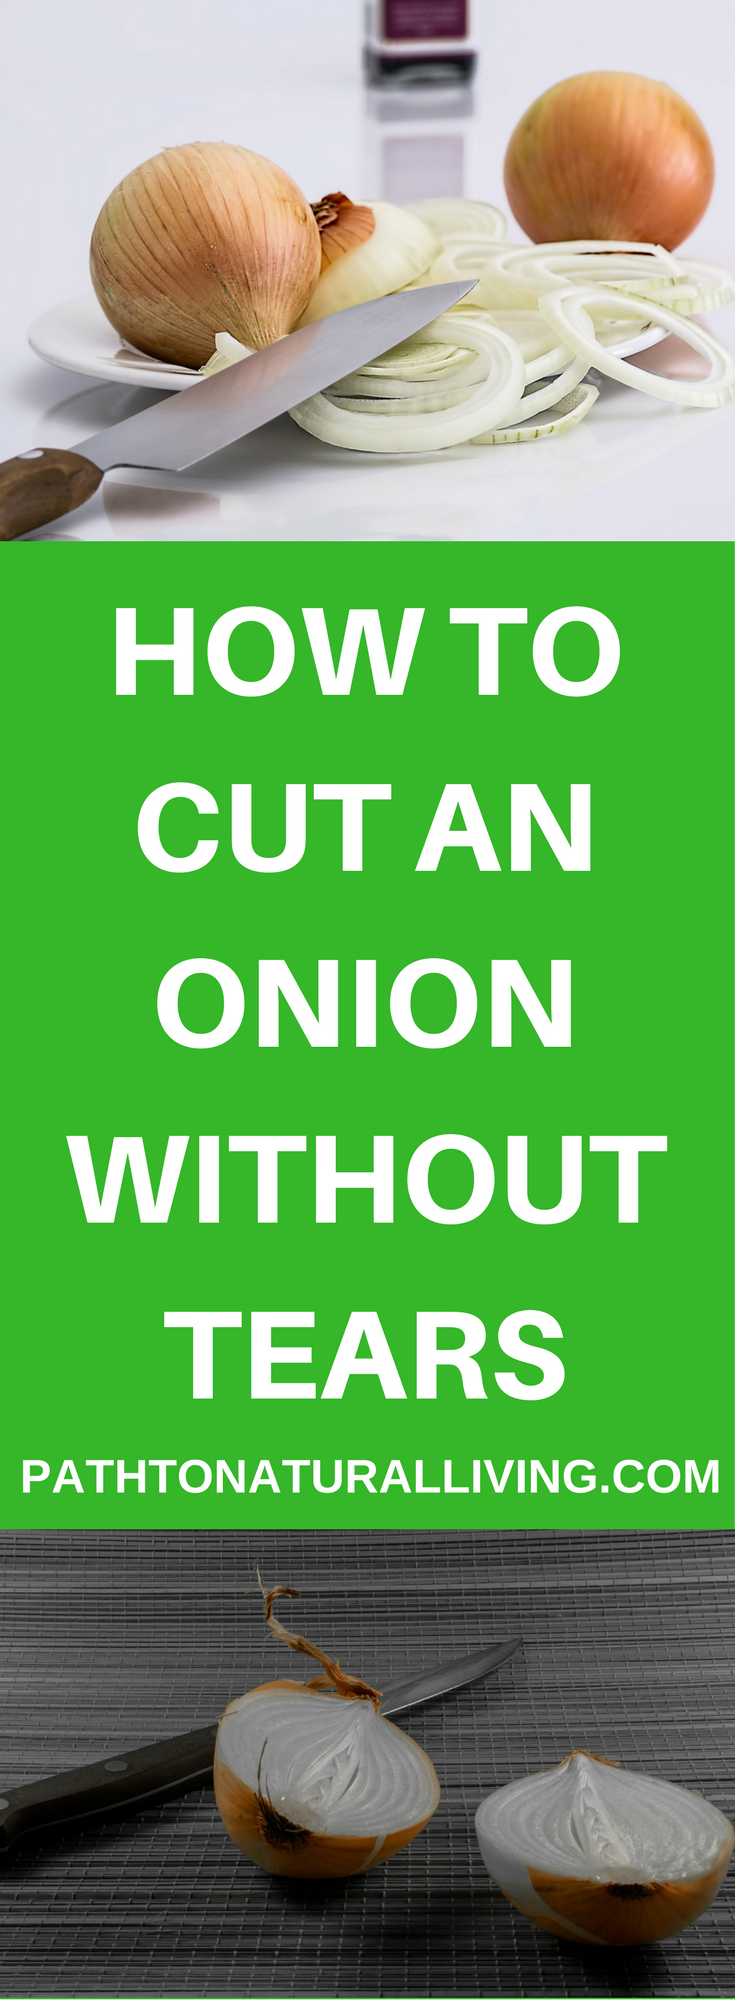 How to Cut an Onion Without Tears – How to Cut Up an Onion